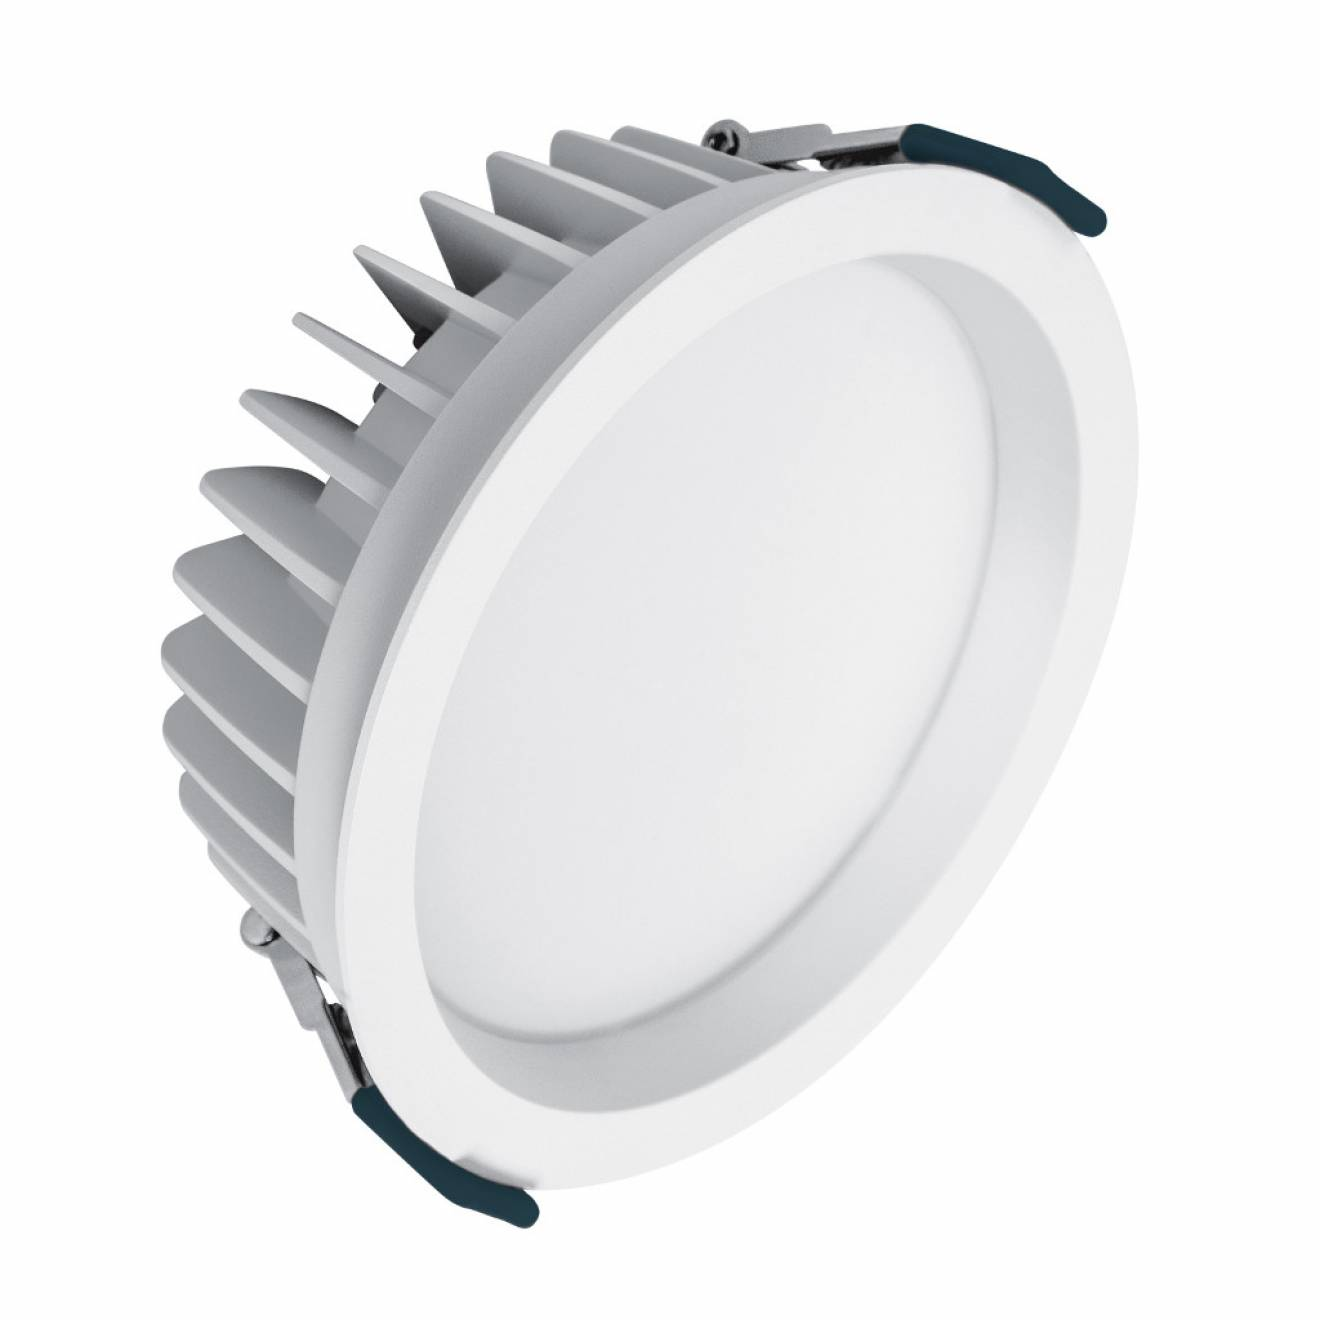 Luces Downlight Led Ledvance Led Downlight 14w 3000k Warmweiß